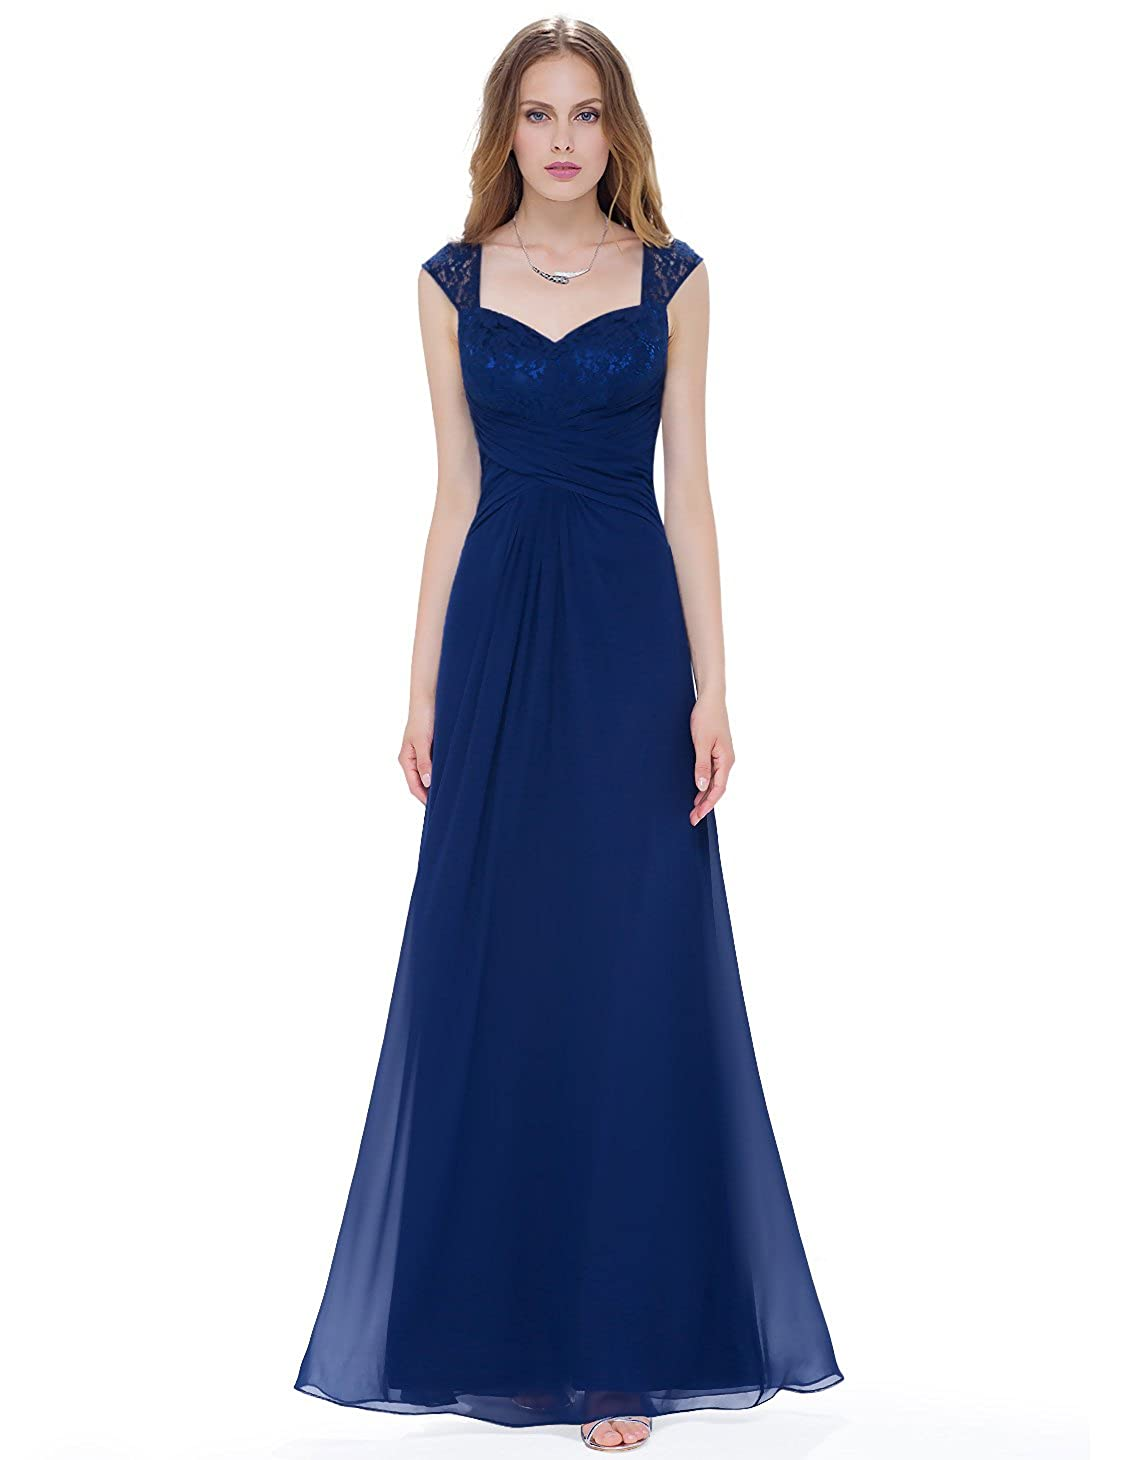 Ever-Pretty Women s Floor Length Ruched Evening Dress with Queen Anne  Neckline 08935 at Amazon Women s Clothing store  84f31cc164f7